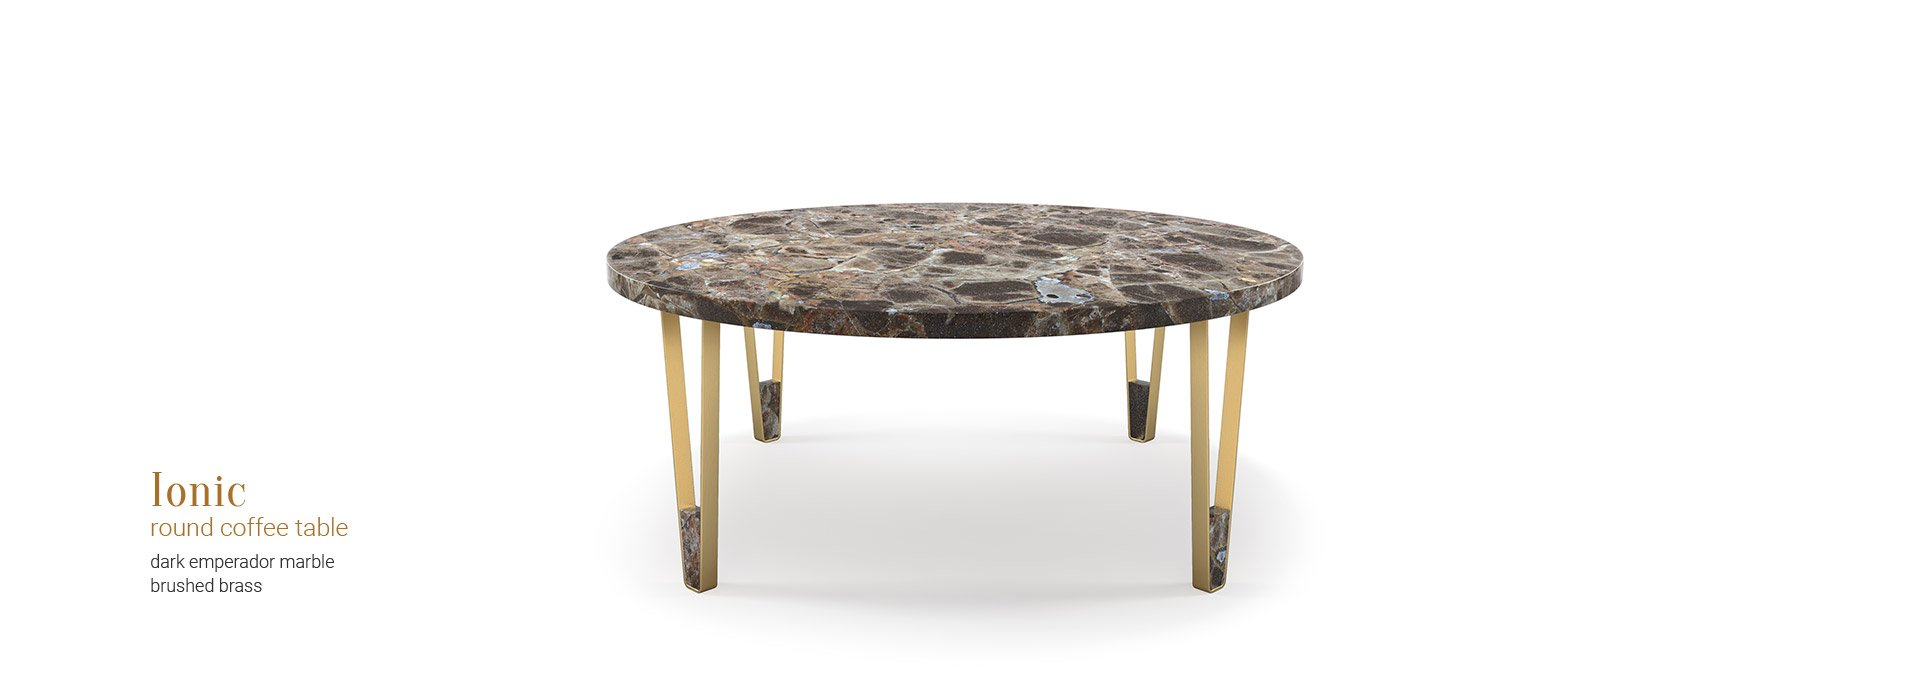 ionic round coffee table insidherland